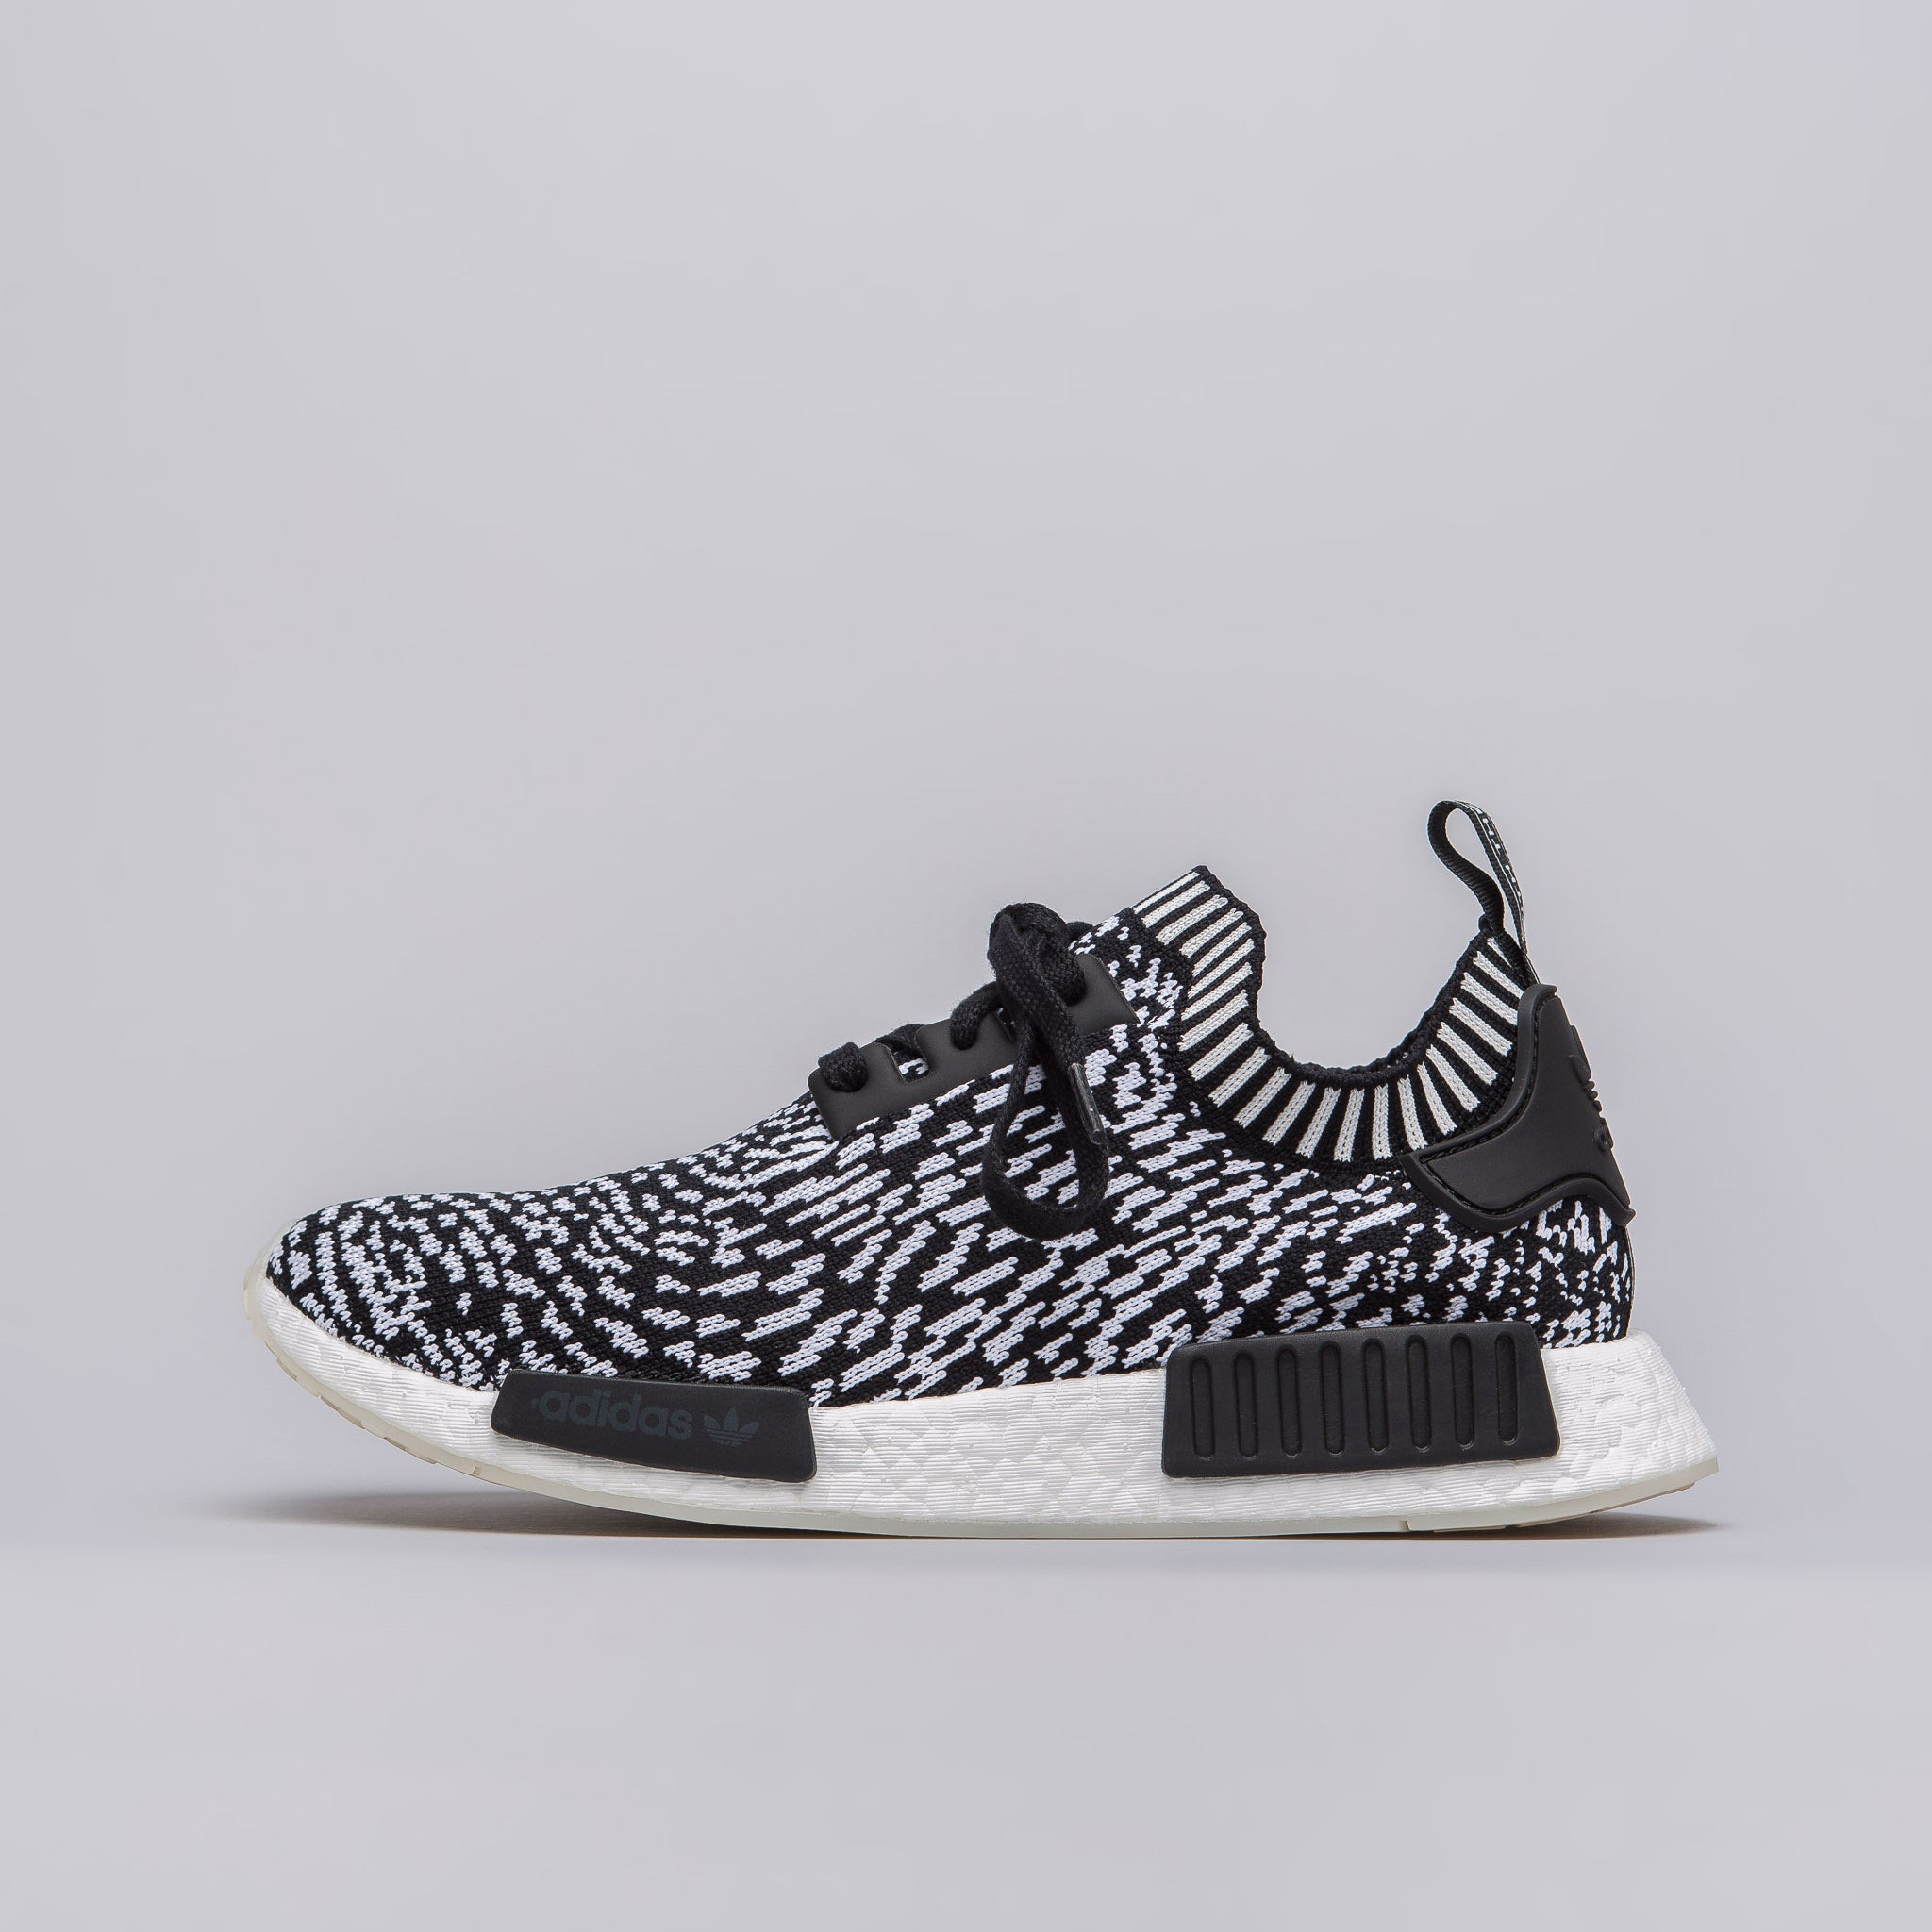 adidas Originals NMD R1 Primeknit Women's Running